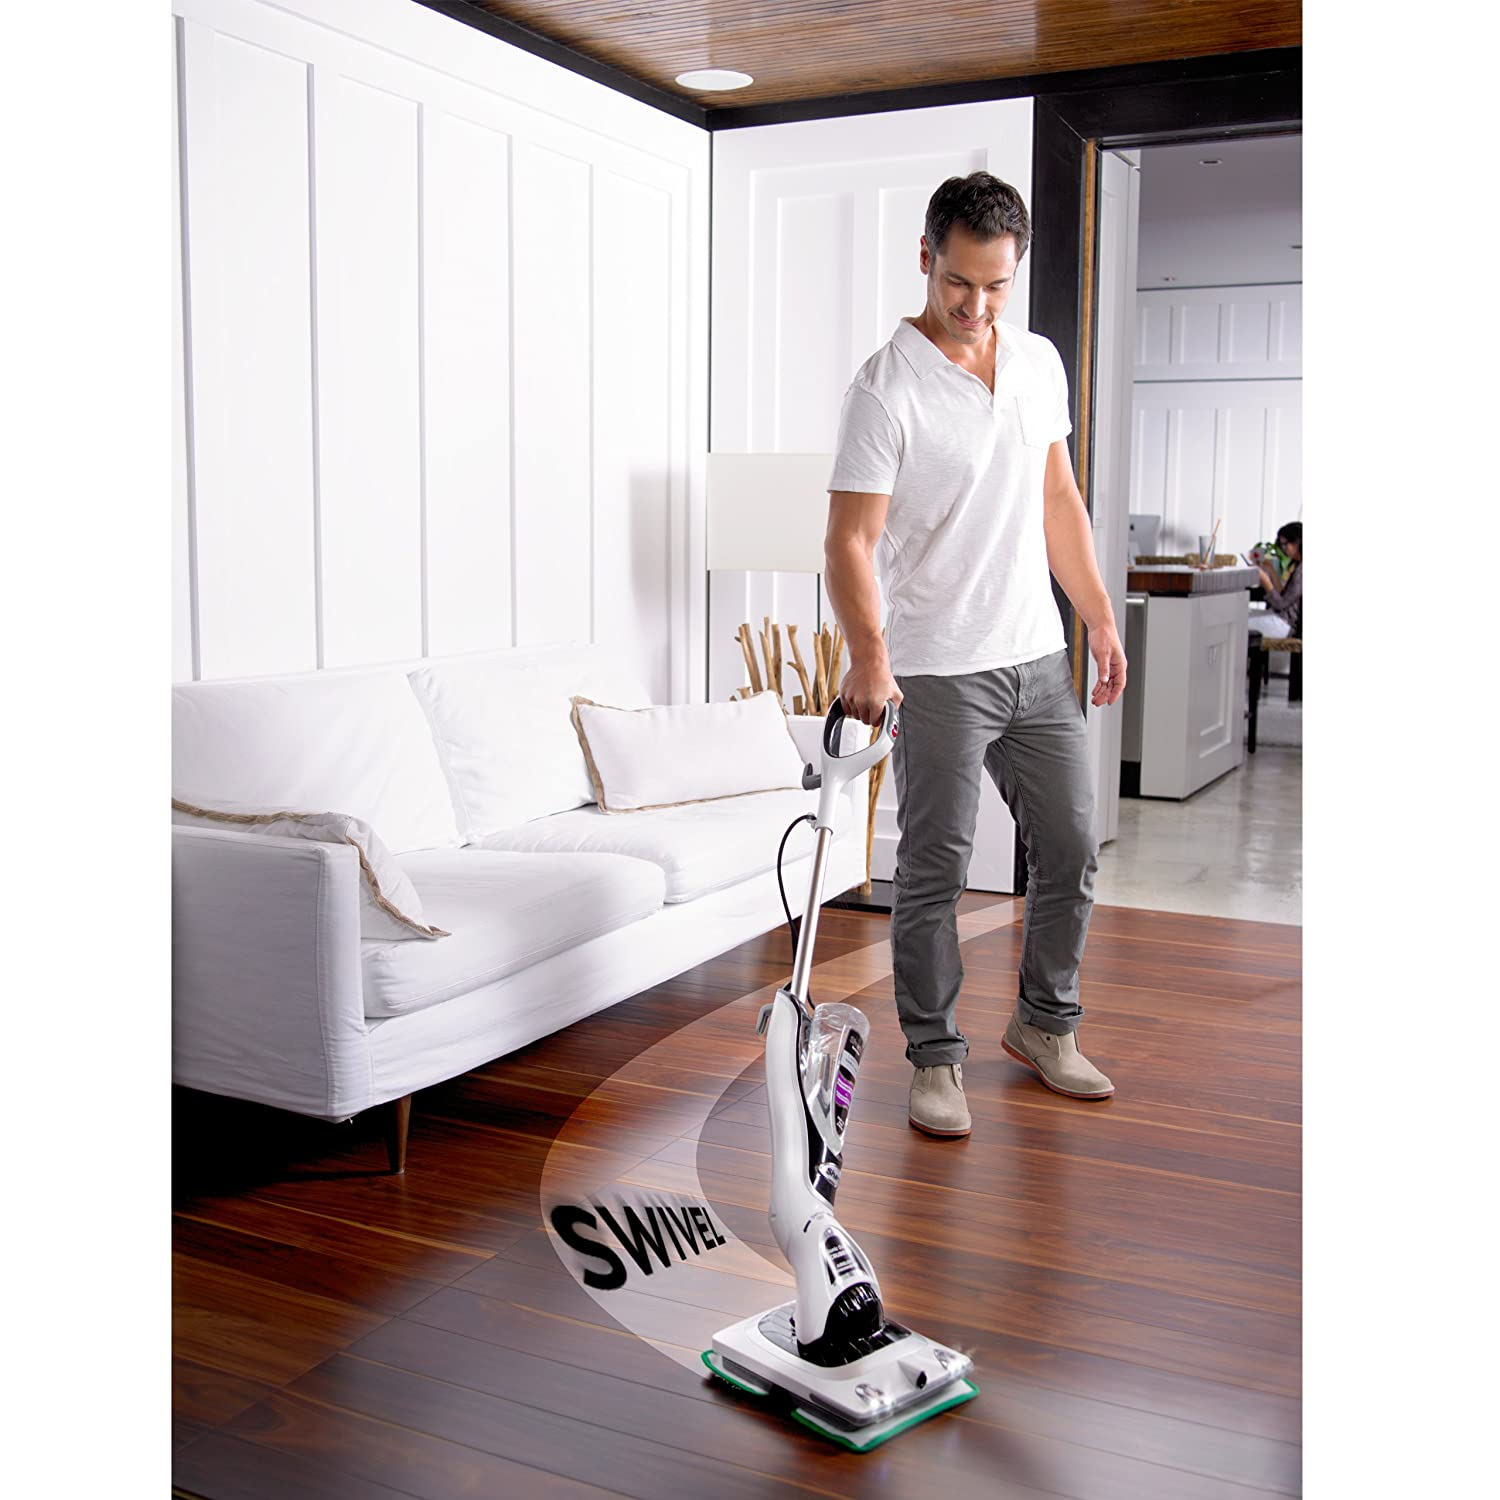 Amazon.com: Shark Sonic Duo Carpet and Hard Floor Cleaner (ZZ550): Home &  Kitchen - Amazon.com: Shark Sonic Duo Carpet And Hard Floor Cleaner (ZZ550